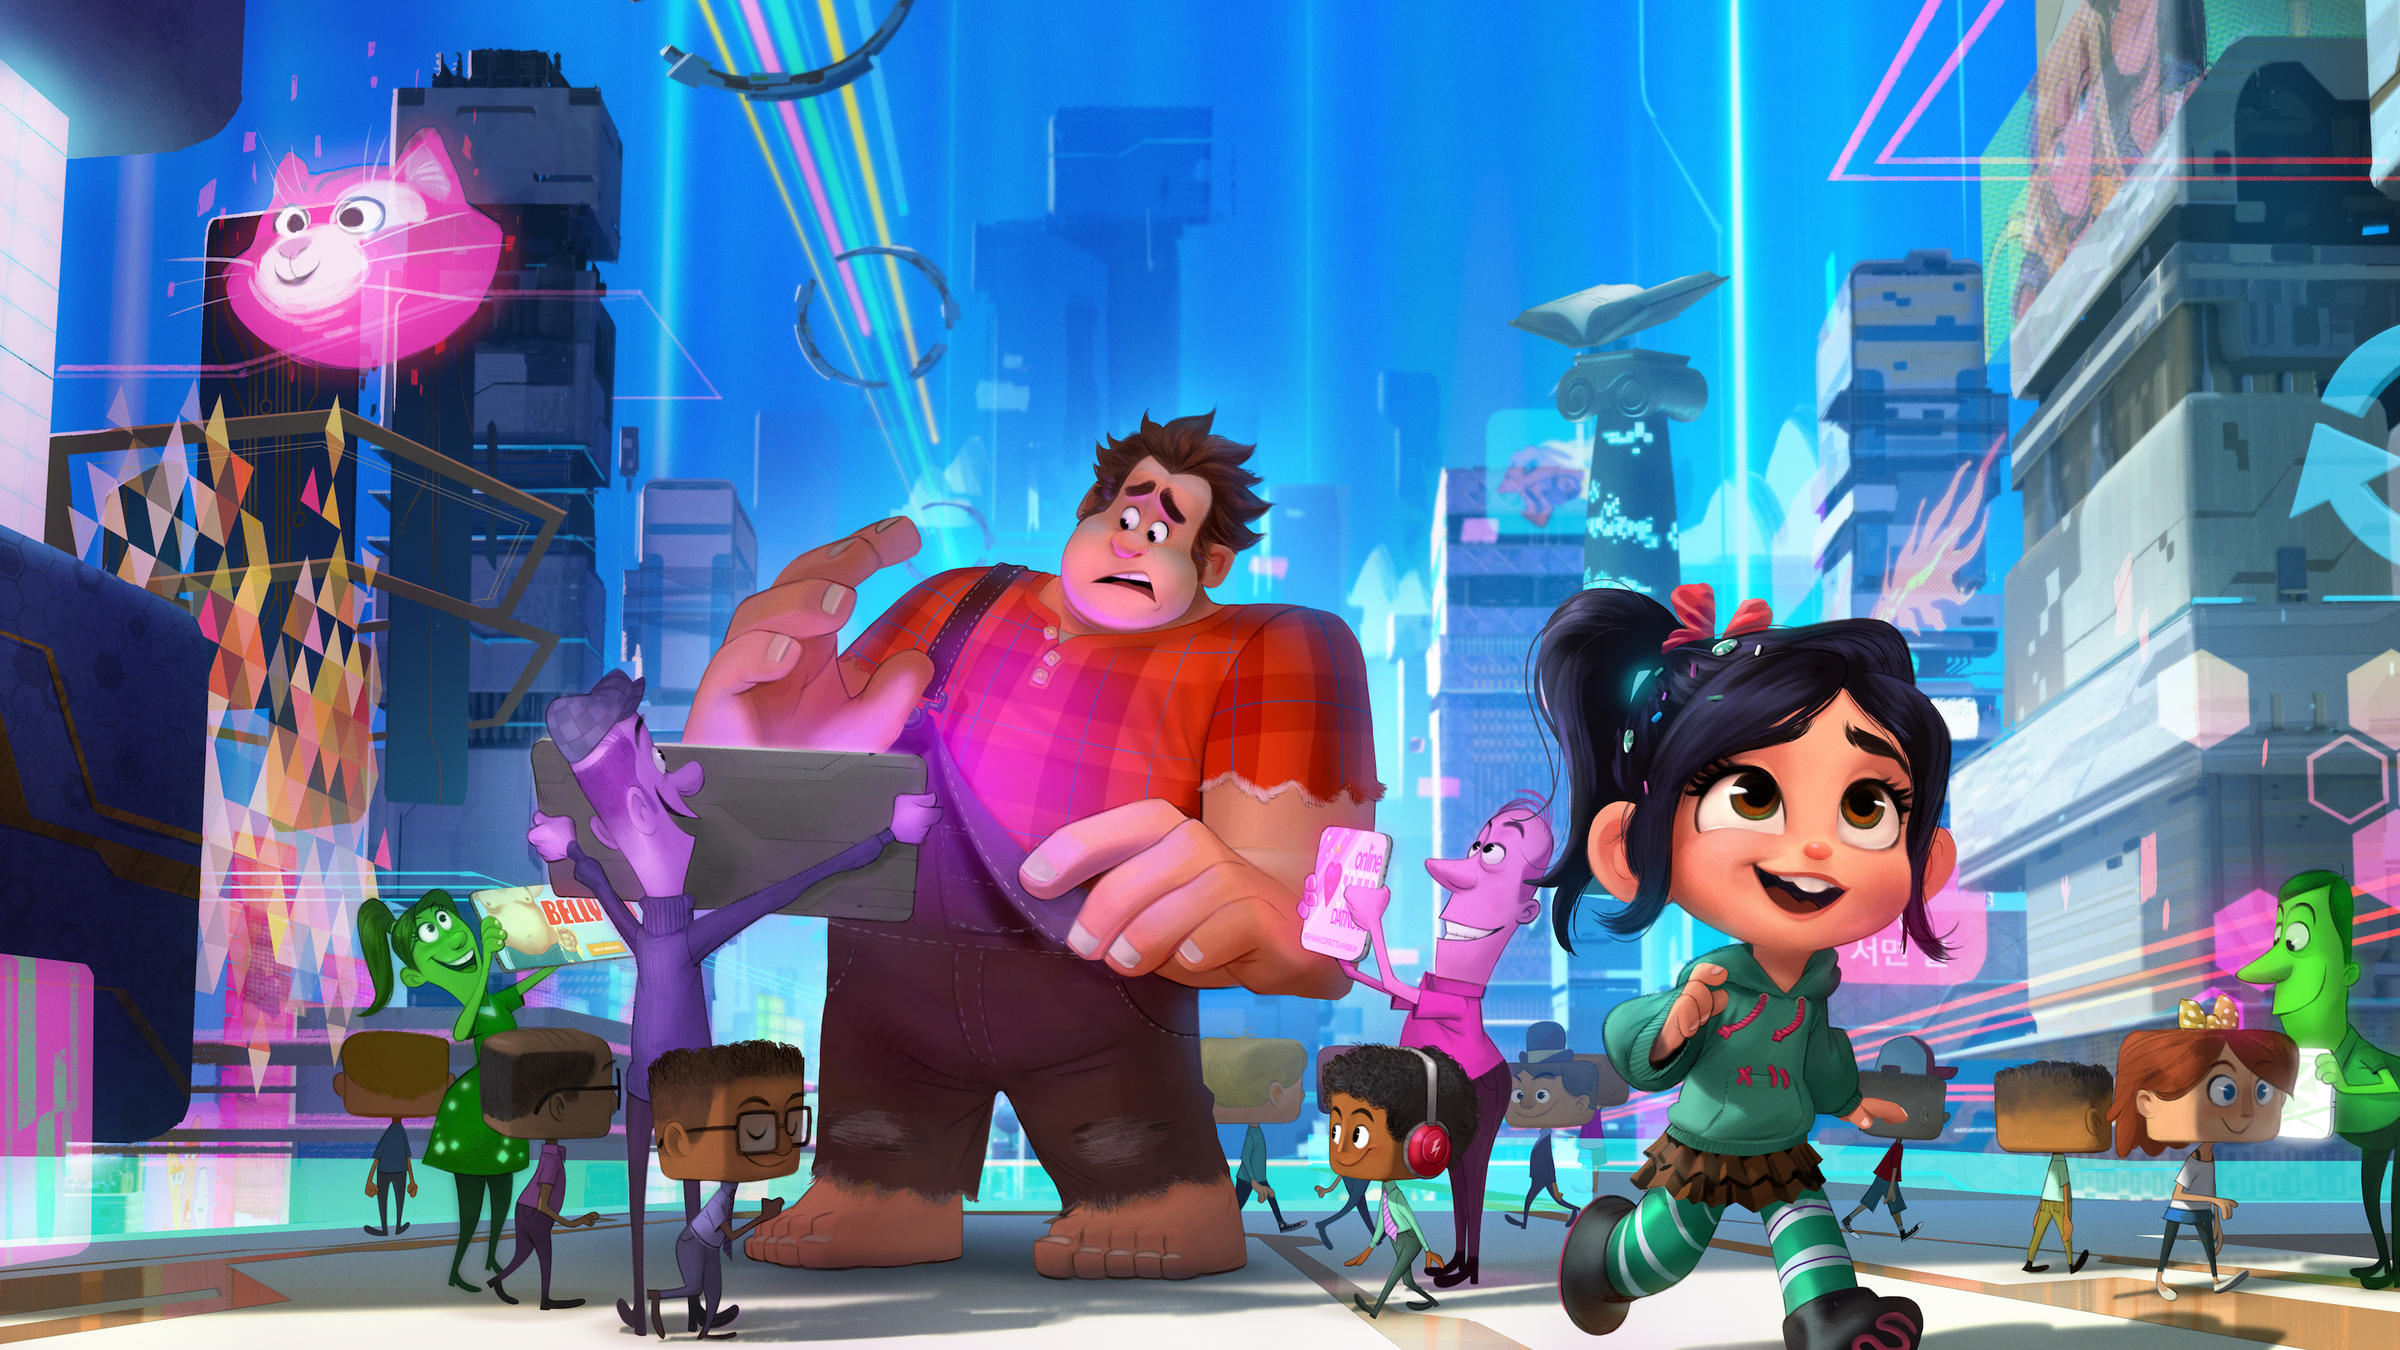 Ralph (voiced by John C. Reilly) and Vanellope (voiced by Sarah Silverman) venture out onto the internet in Ralph Breaks the Internet (2018)